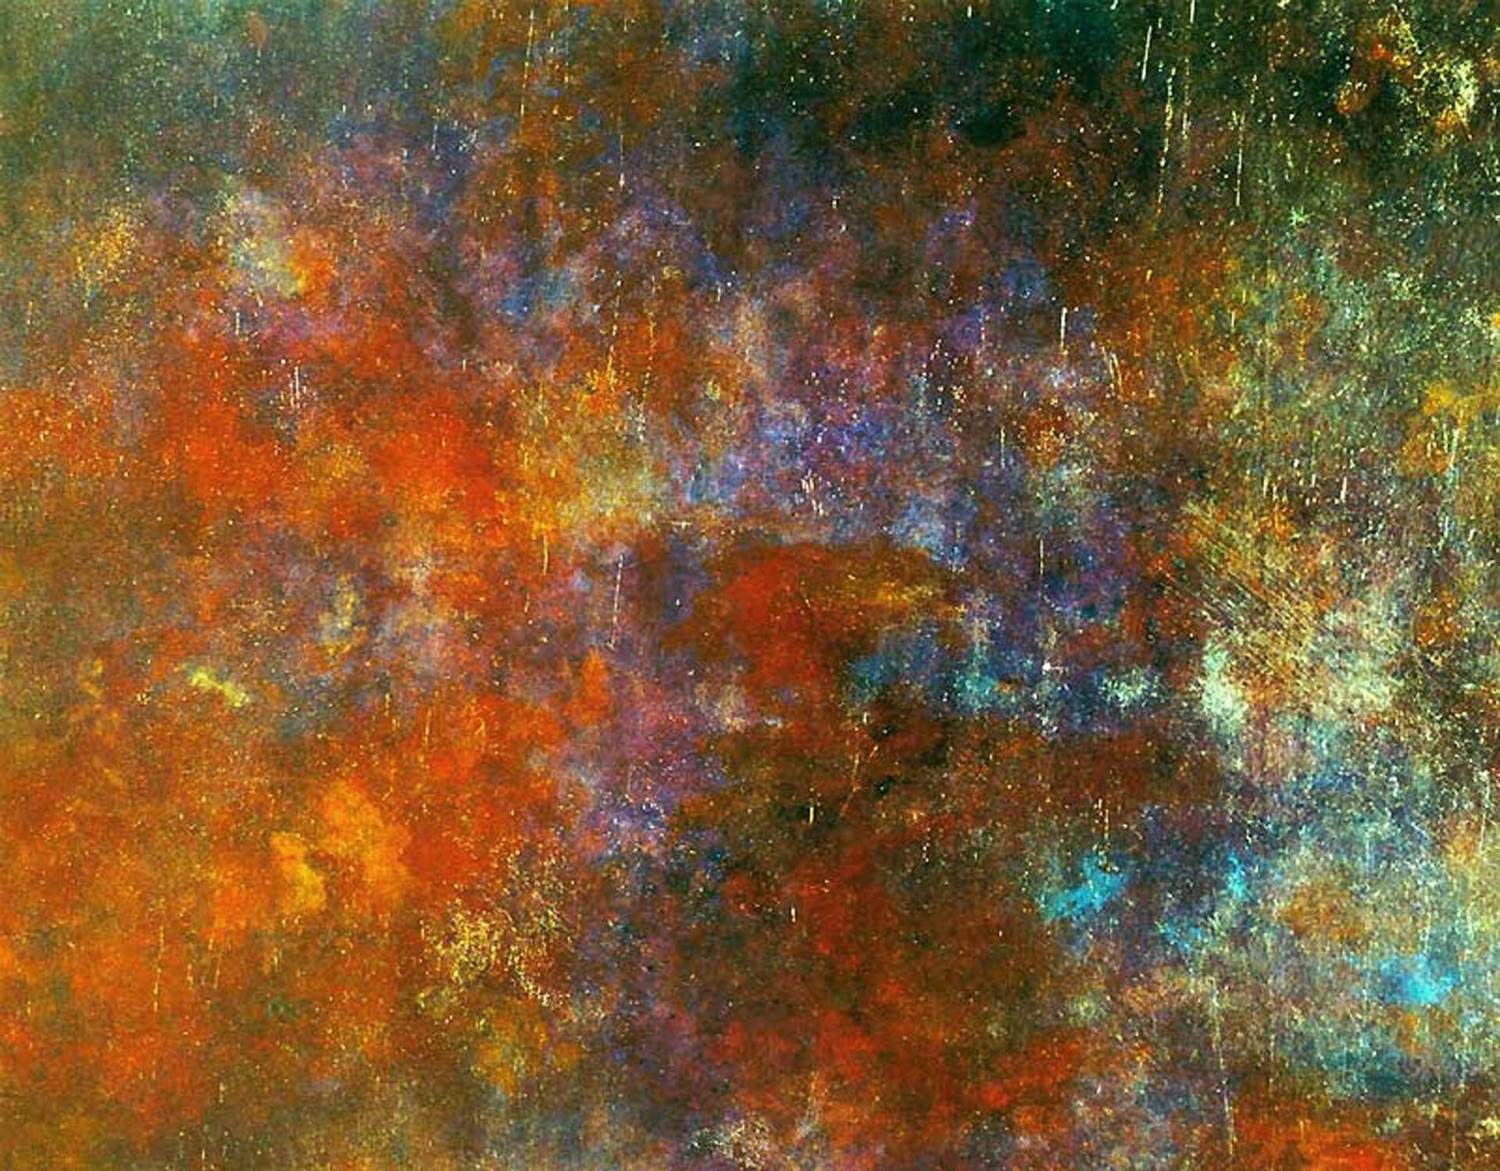 star eyes – 154 x 192 cm – oil, acrylic and plaster on canvas – 2001